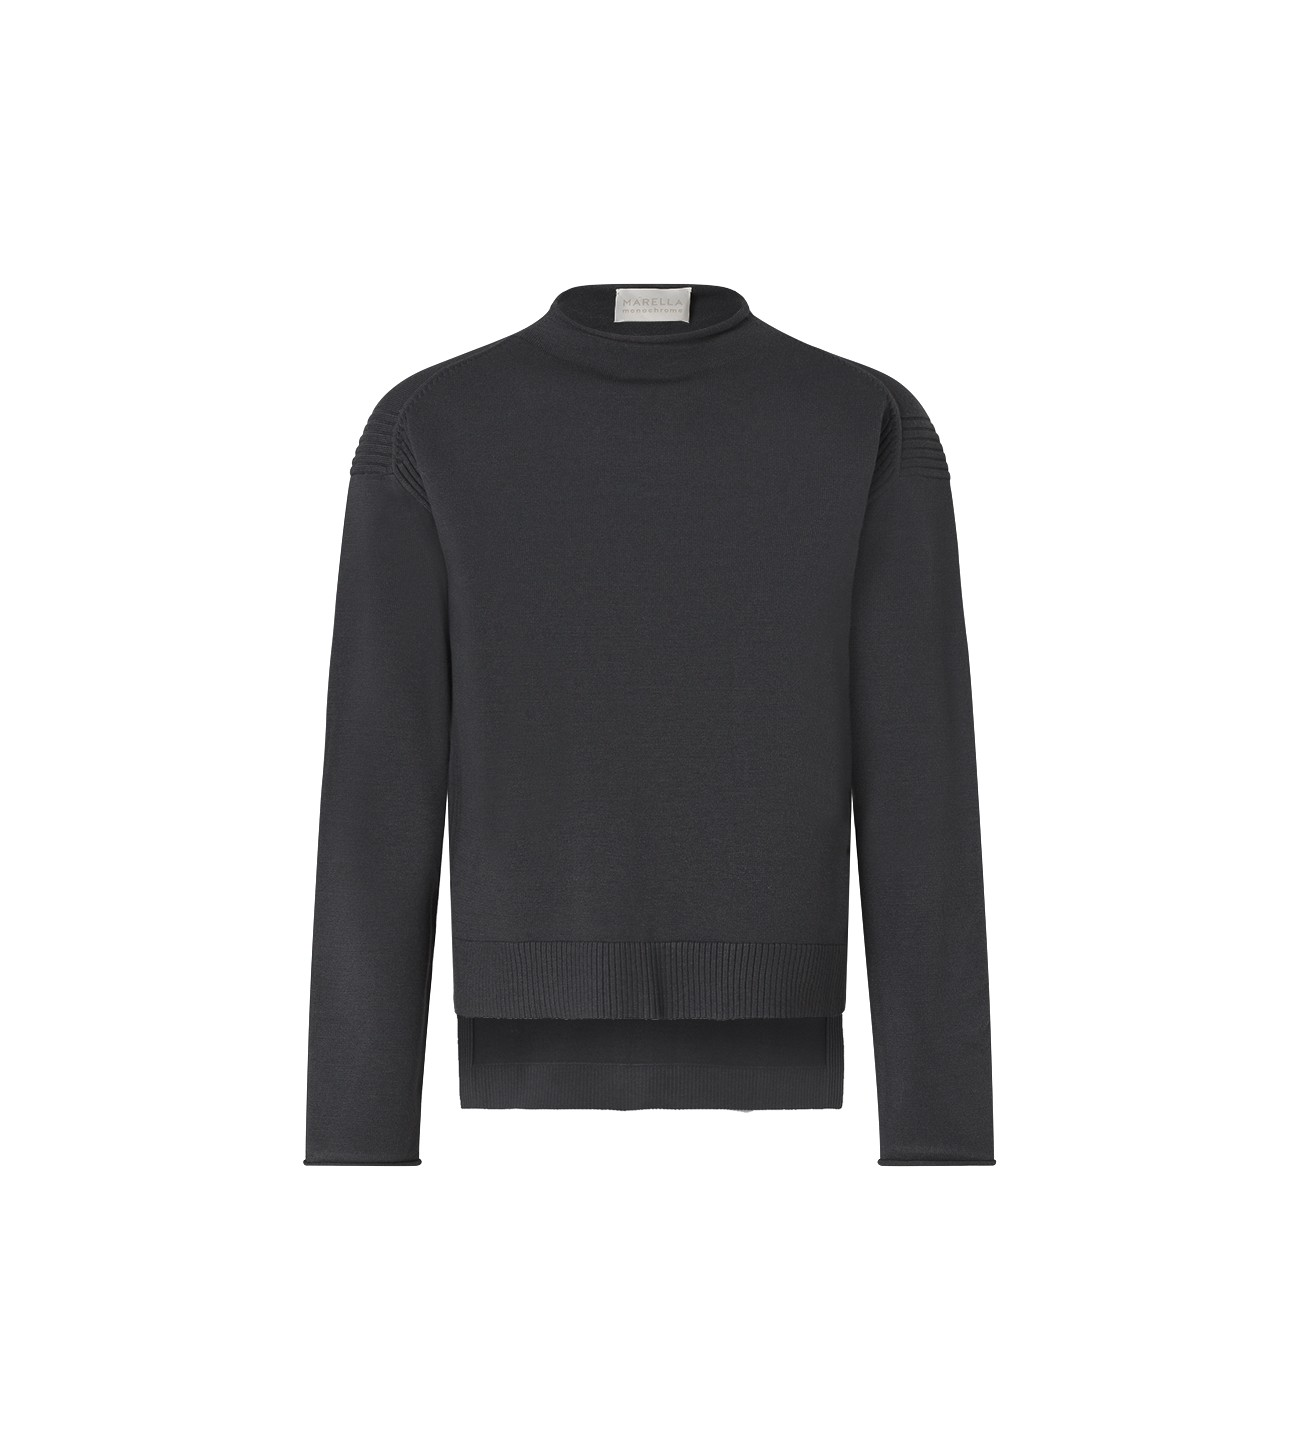 MARELLA_SWEATER_WITH_PERKINS_COLLAR_MARIONA_FASHION_CLOTHING_WOMAN_SHOP_ONLINE_33660819200